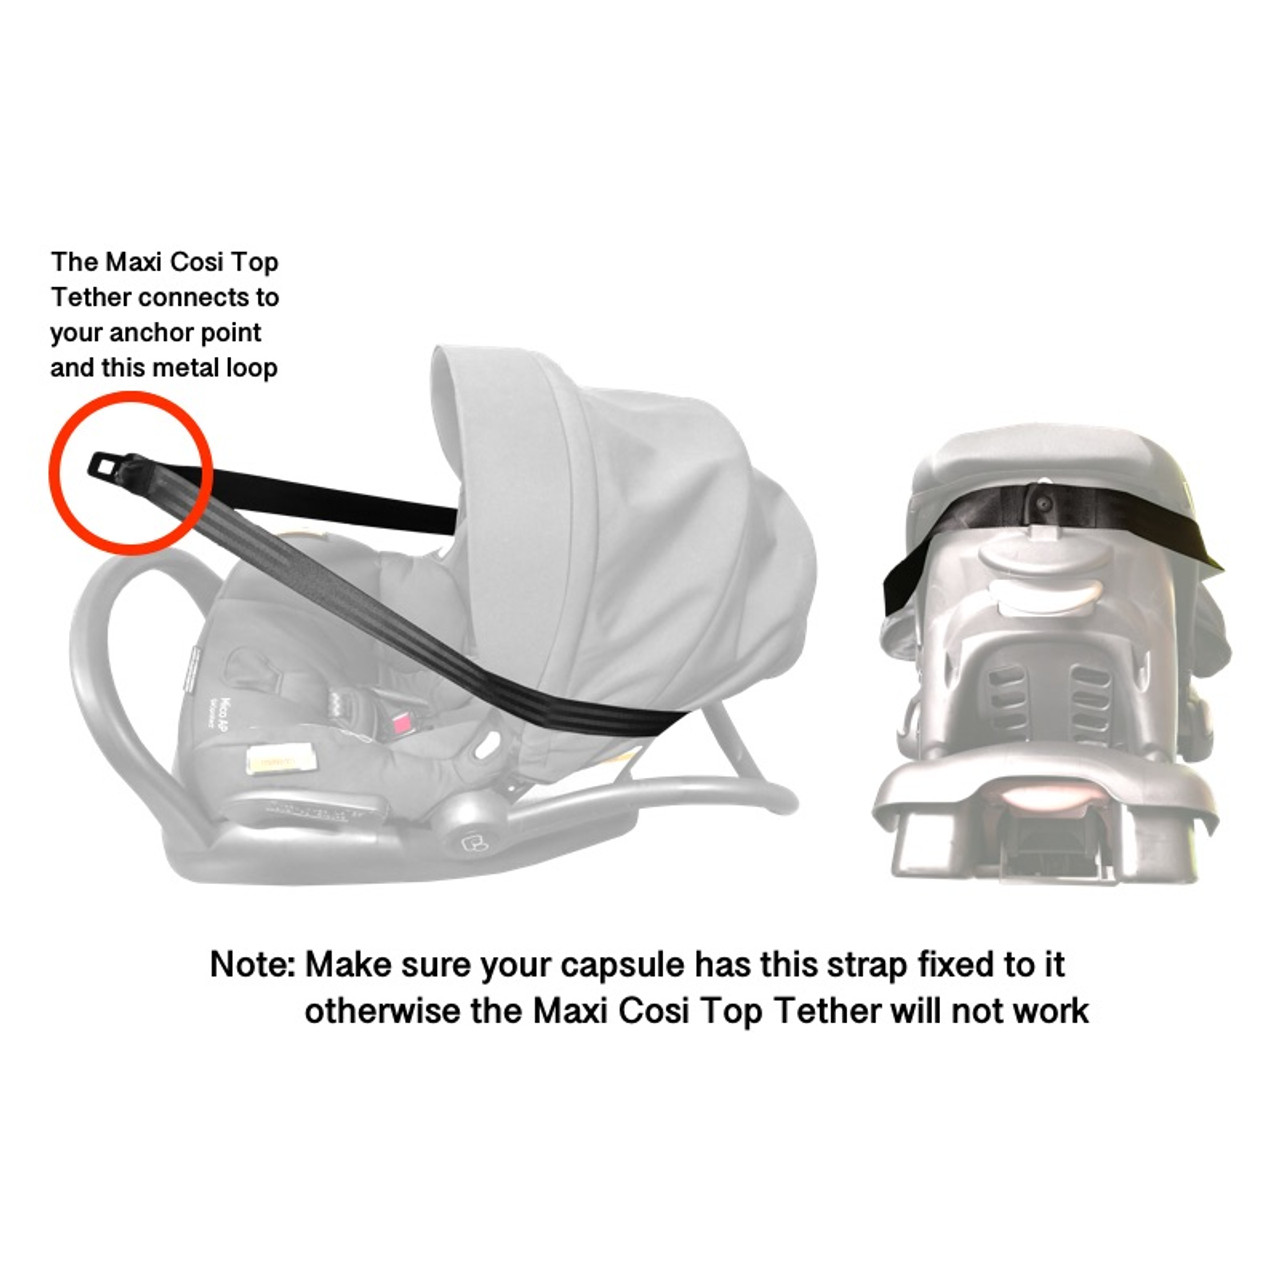 Maxi Cosi Adjustable Top Tether Strap